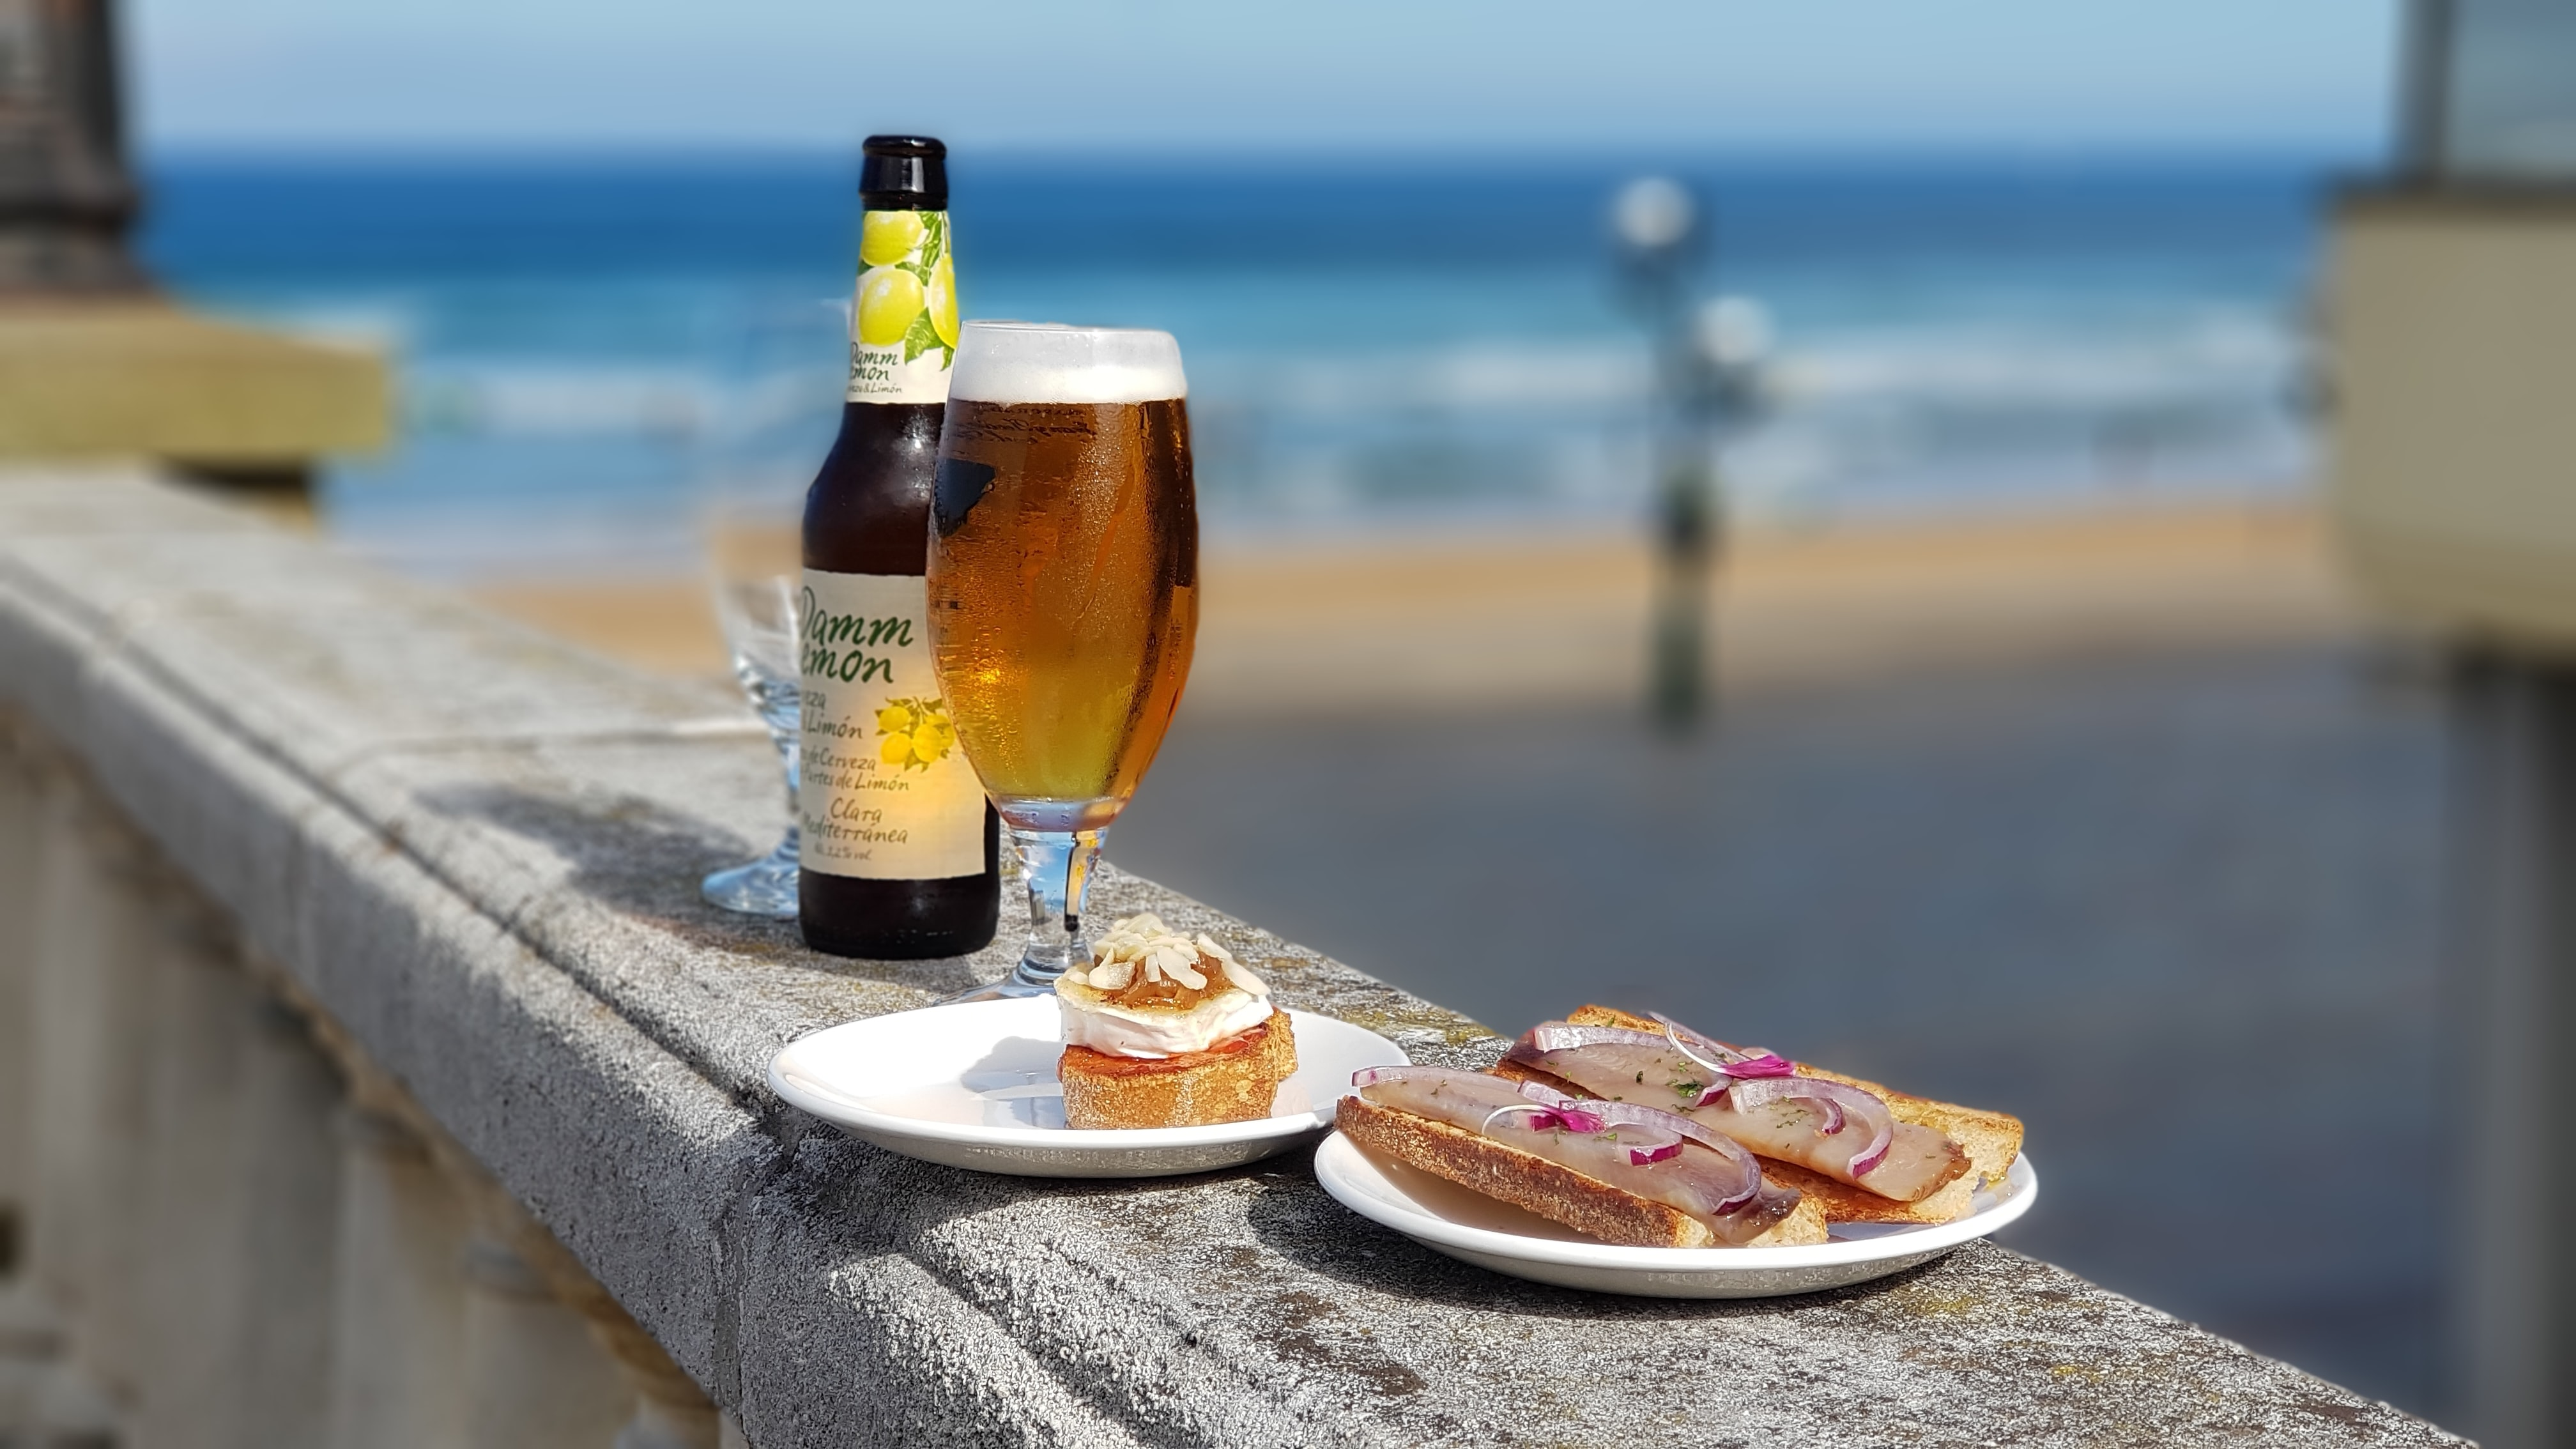 bread on plate beside glass of beer at daytime